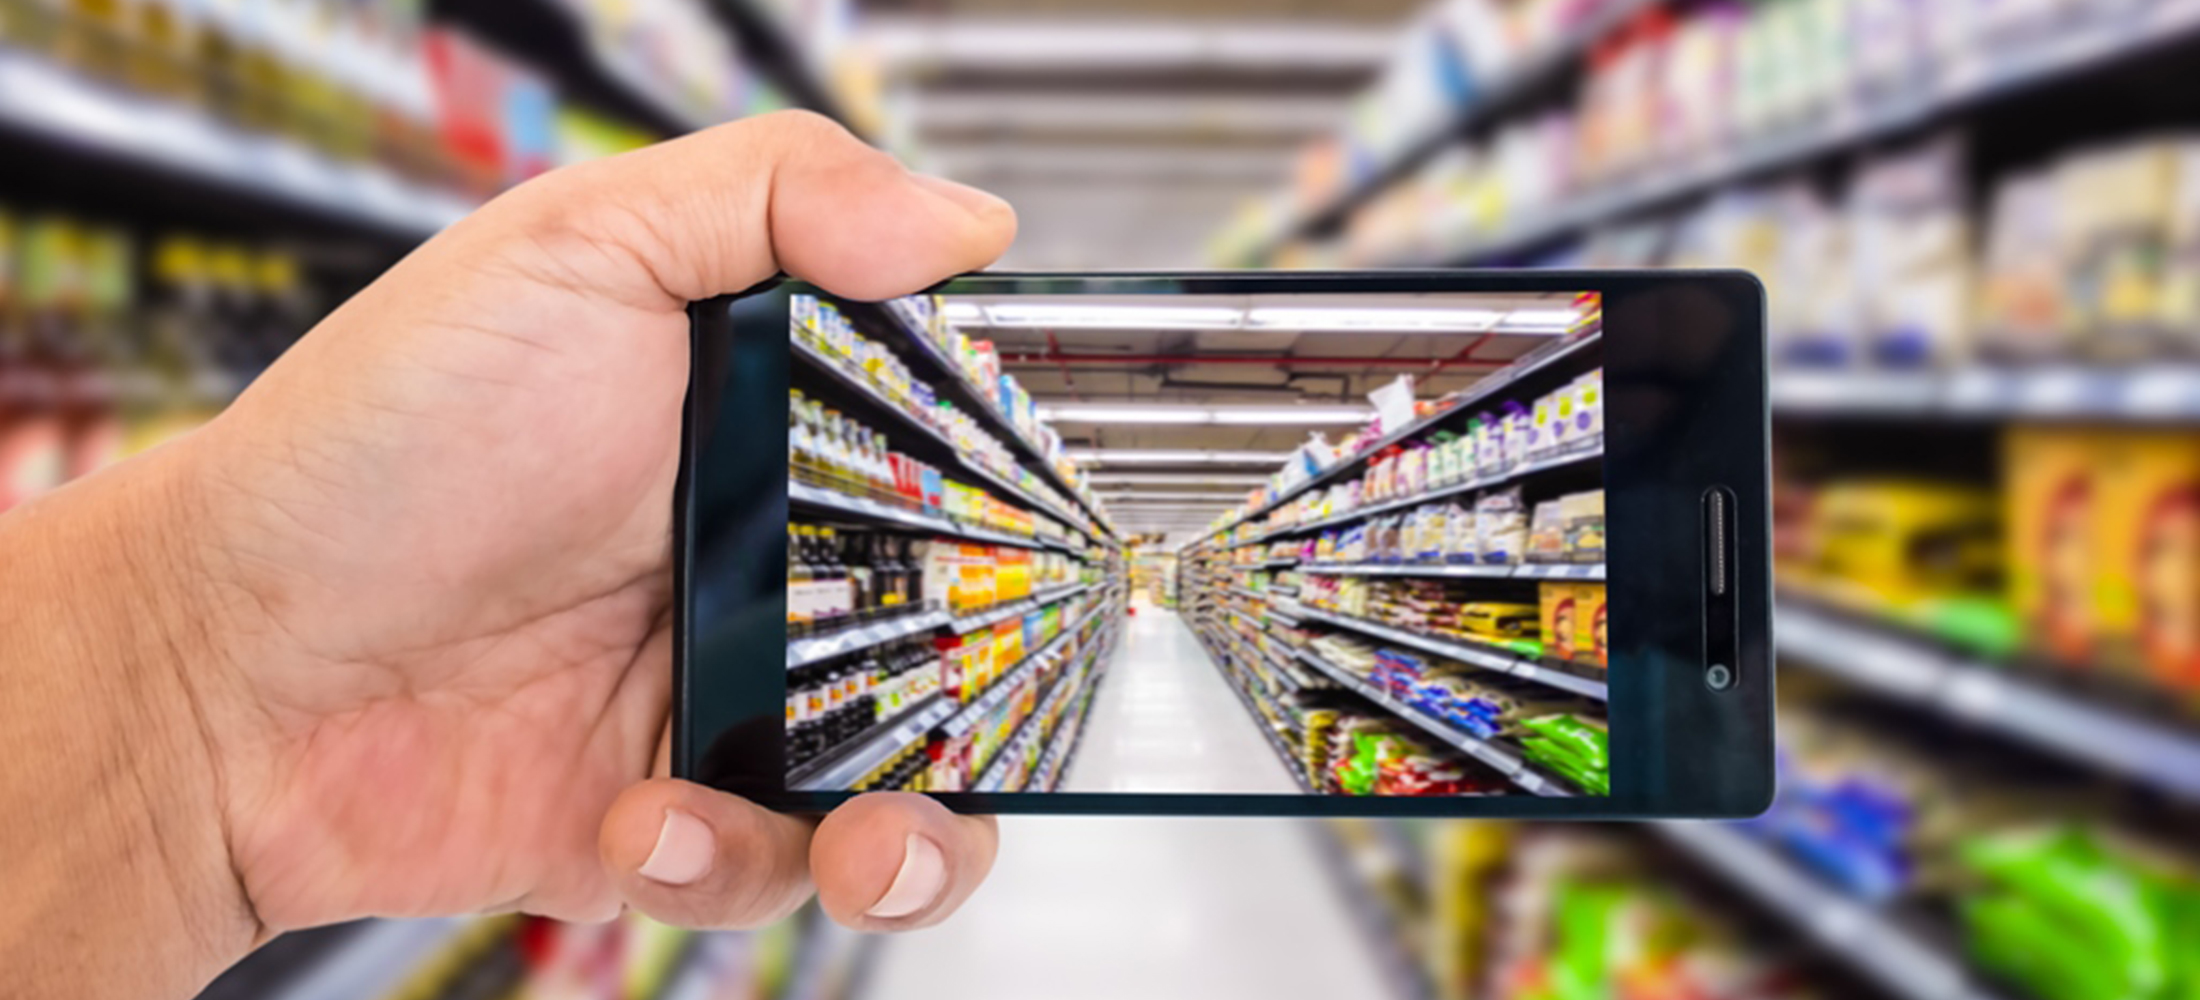 augmented reality in retail